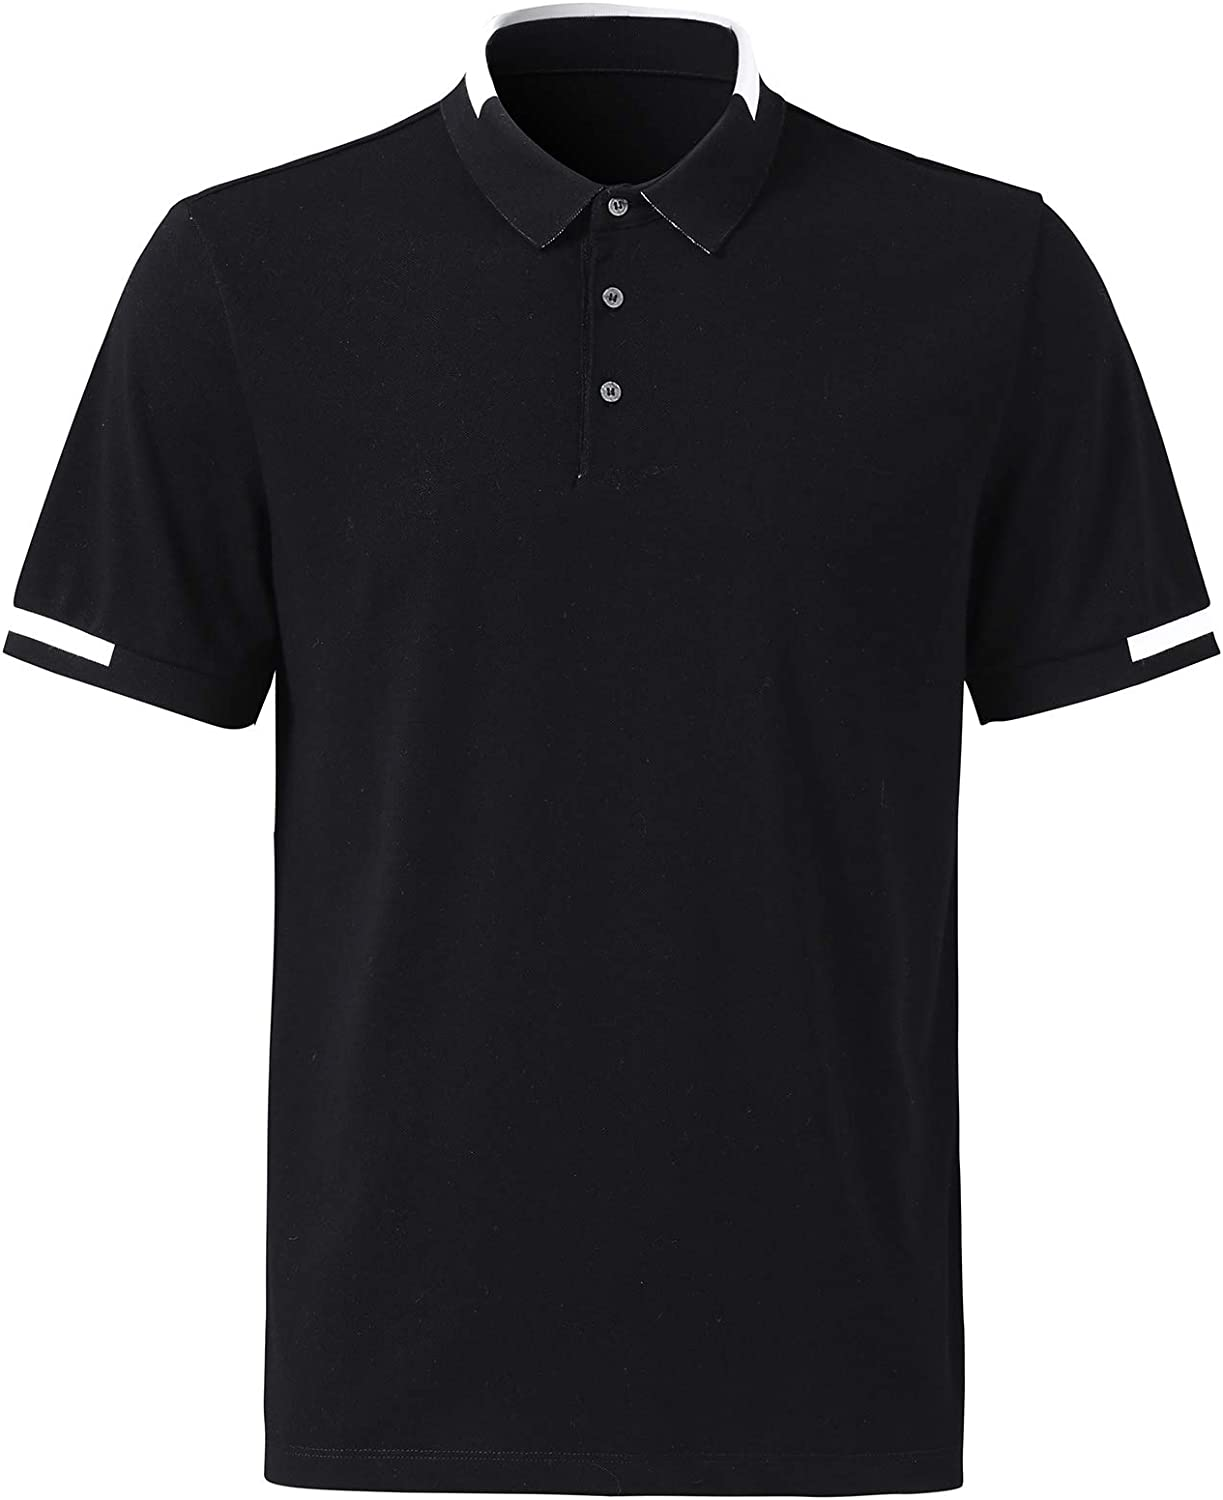 Men's Classic Ranking TOP1 Short Sleeve Ranking integrated 1st place Solid Polo Sports Golf Casual T-Shirt